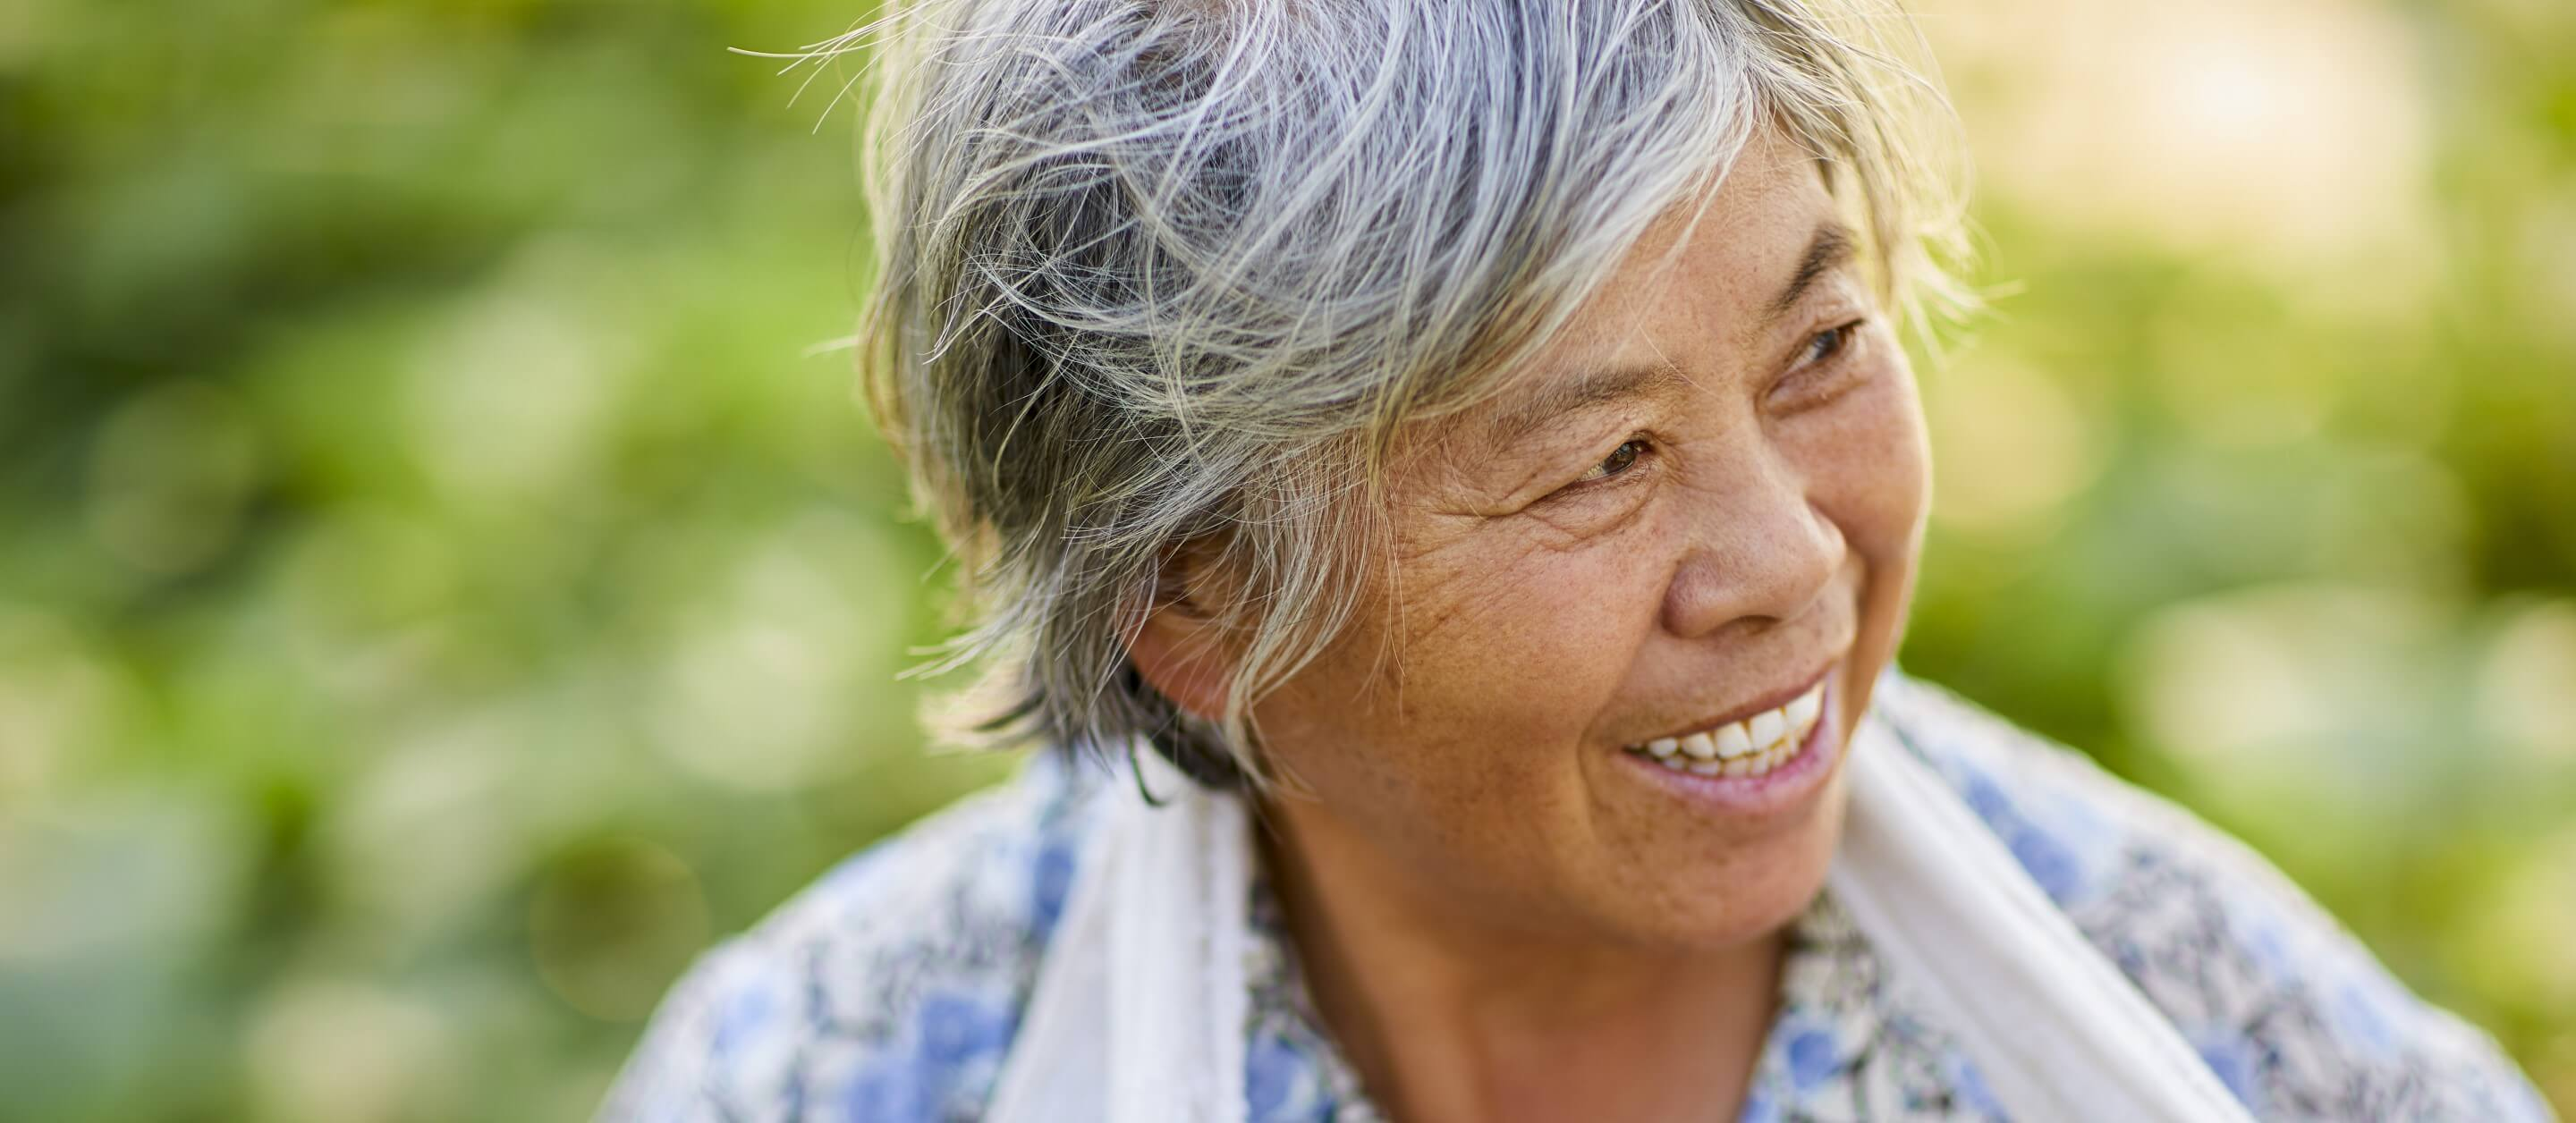 Mature Asian woman with grey hair smiling and looking to her left with bright green leaves in the background